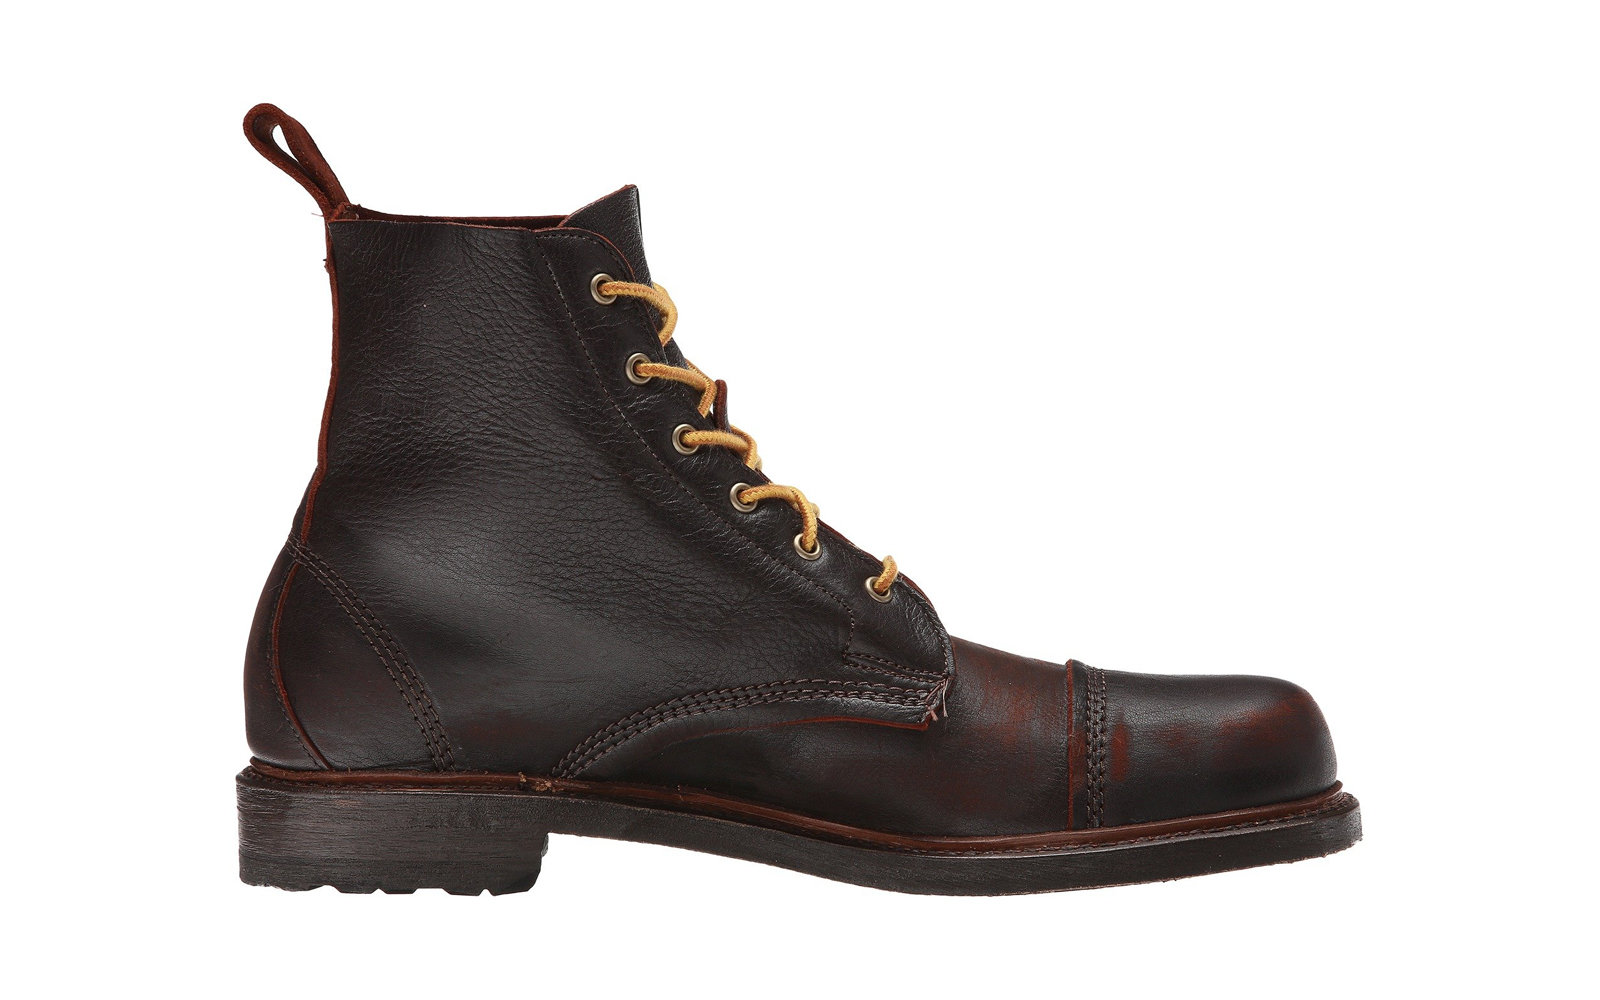 9c68788cbea The Best Men s Waterproof Boots for Every Occasion